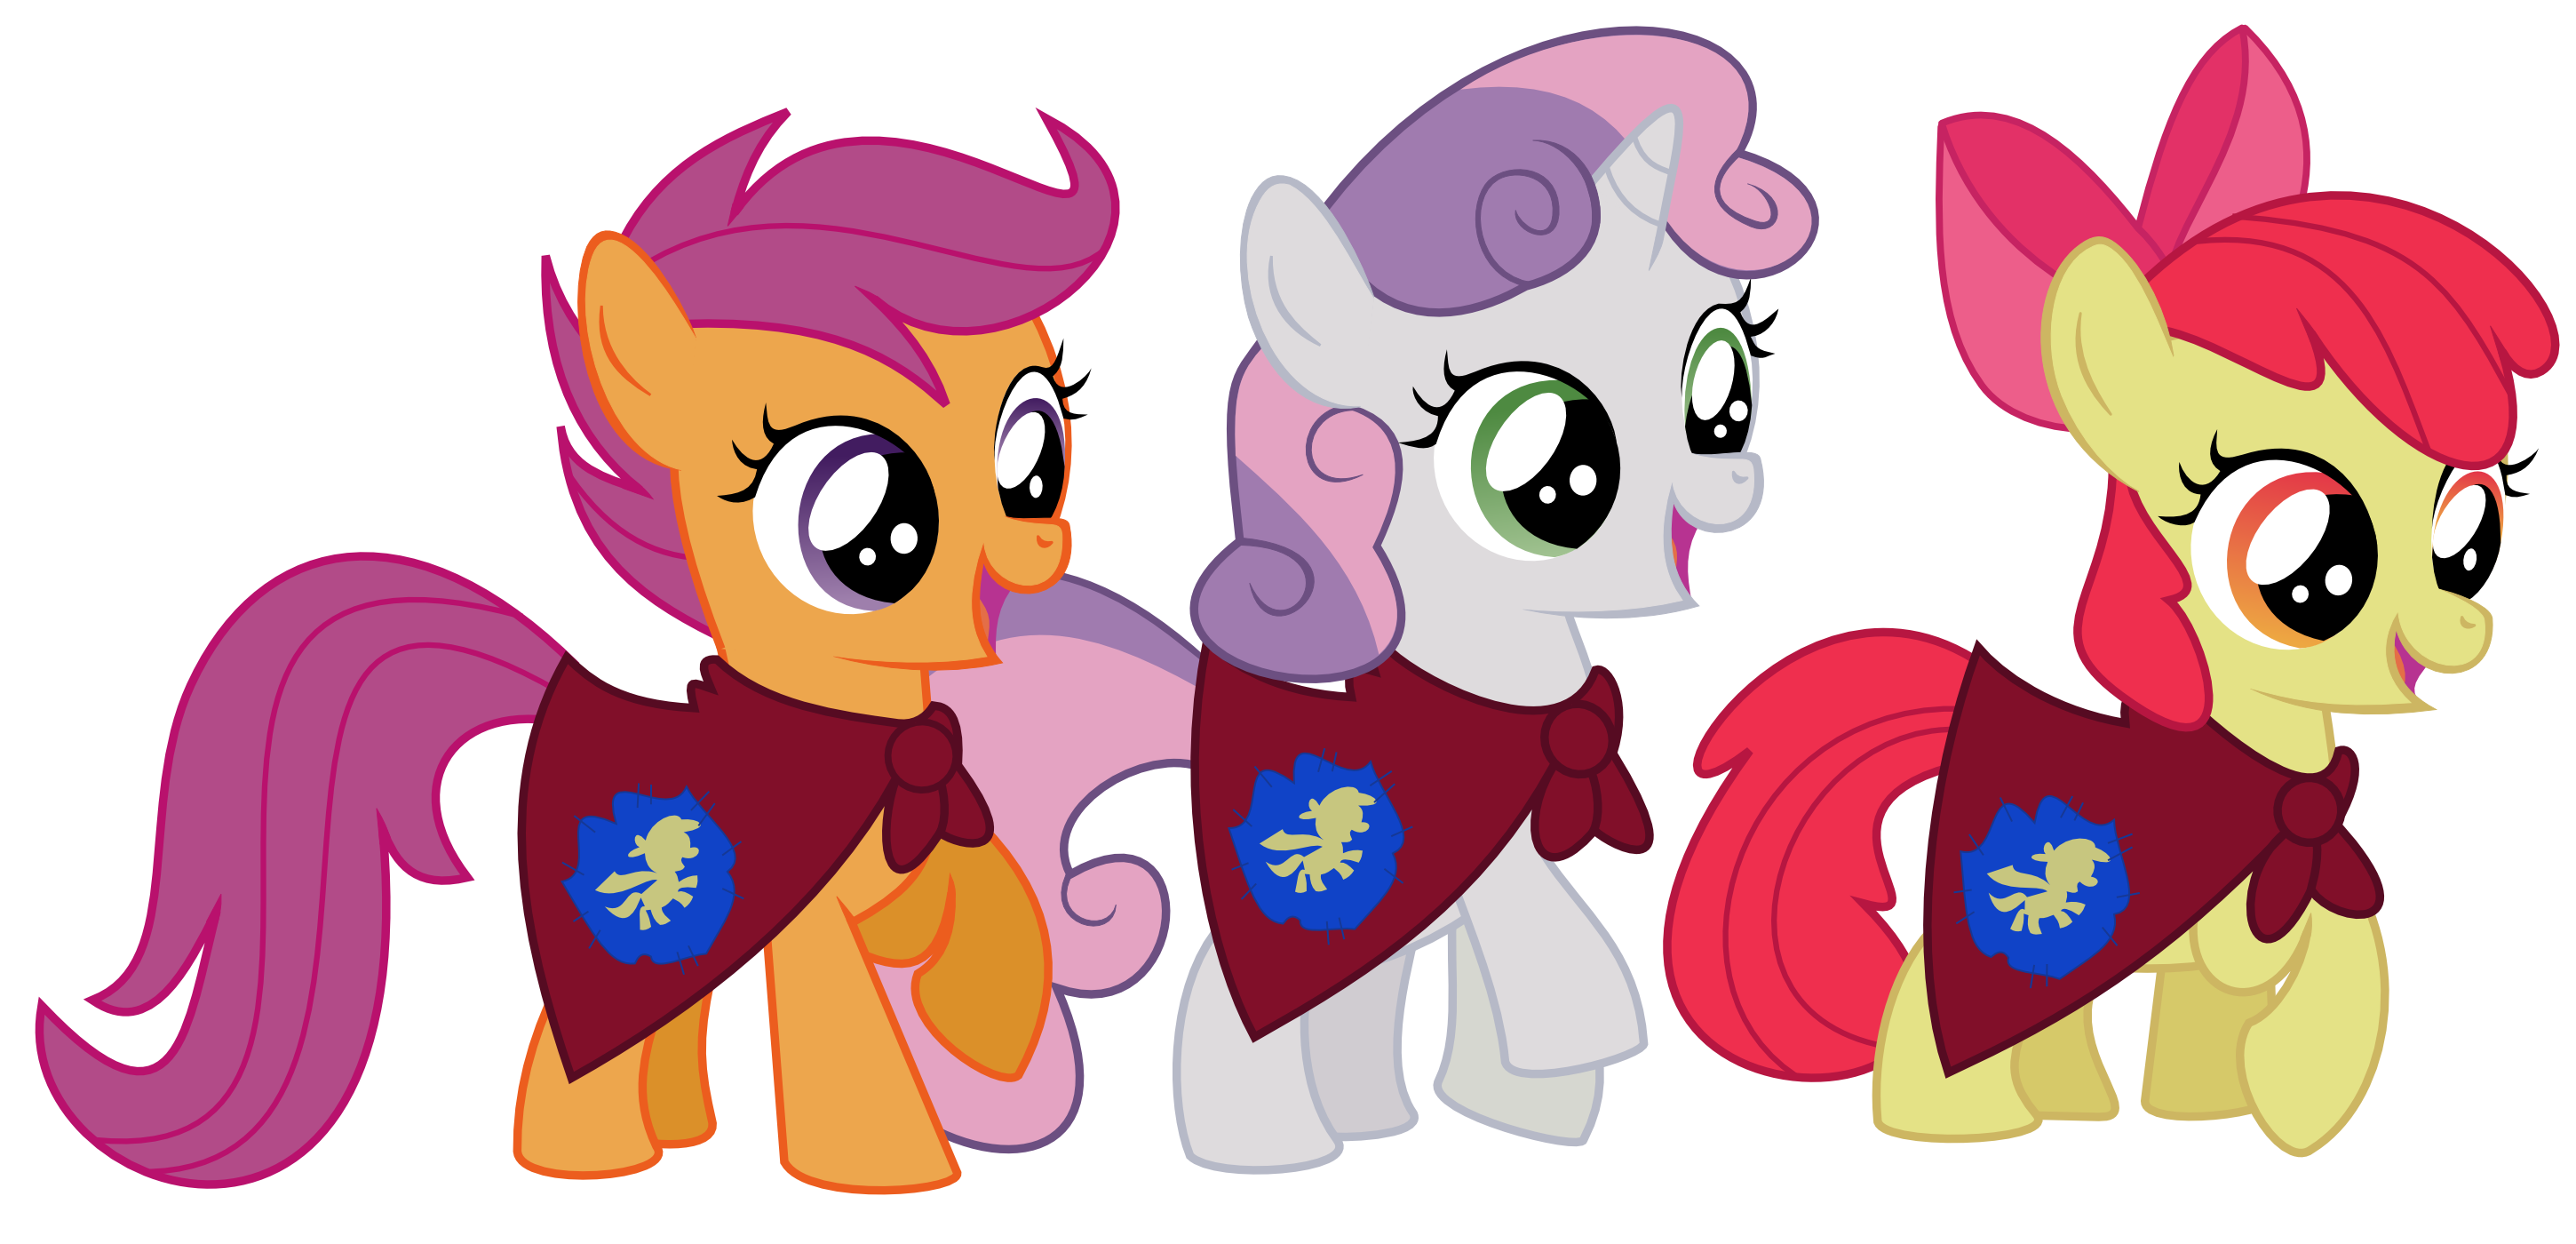 cutie_mark_crusaders_by_adcoon-d3r7oa1.p